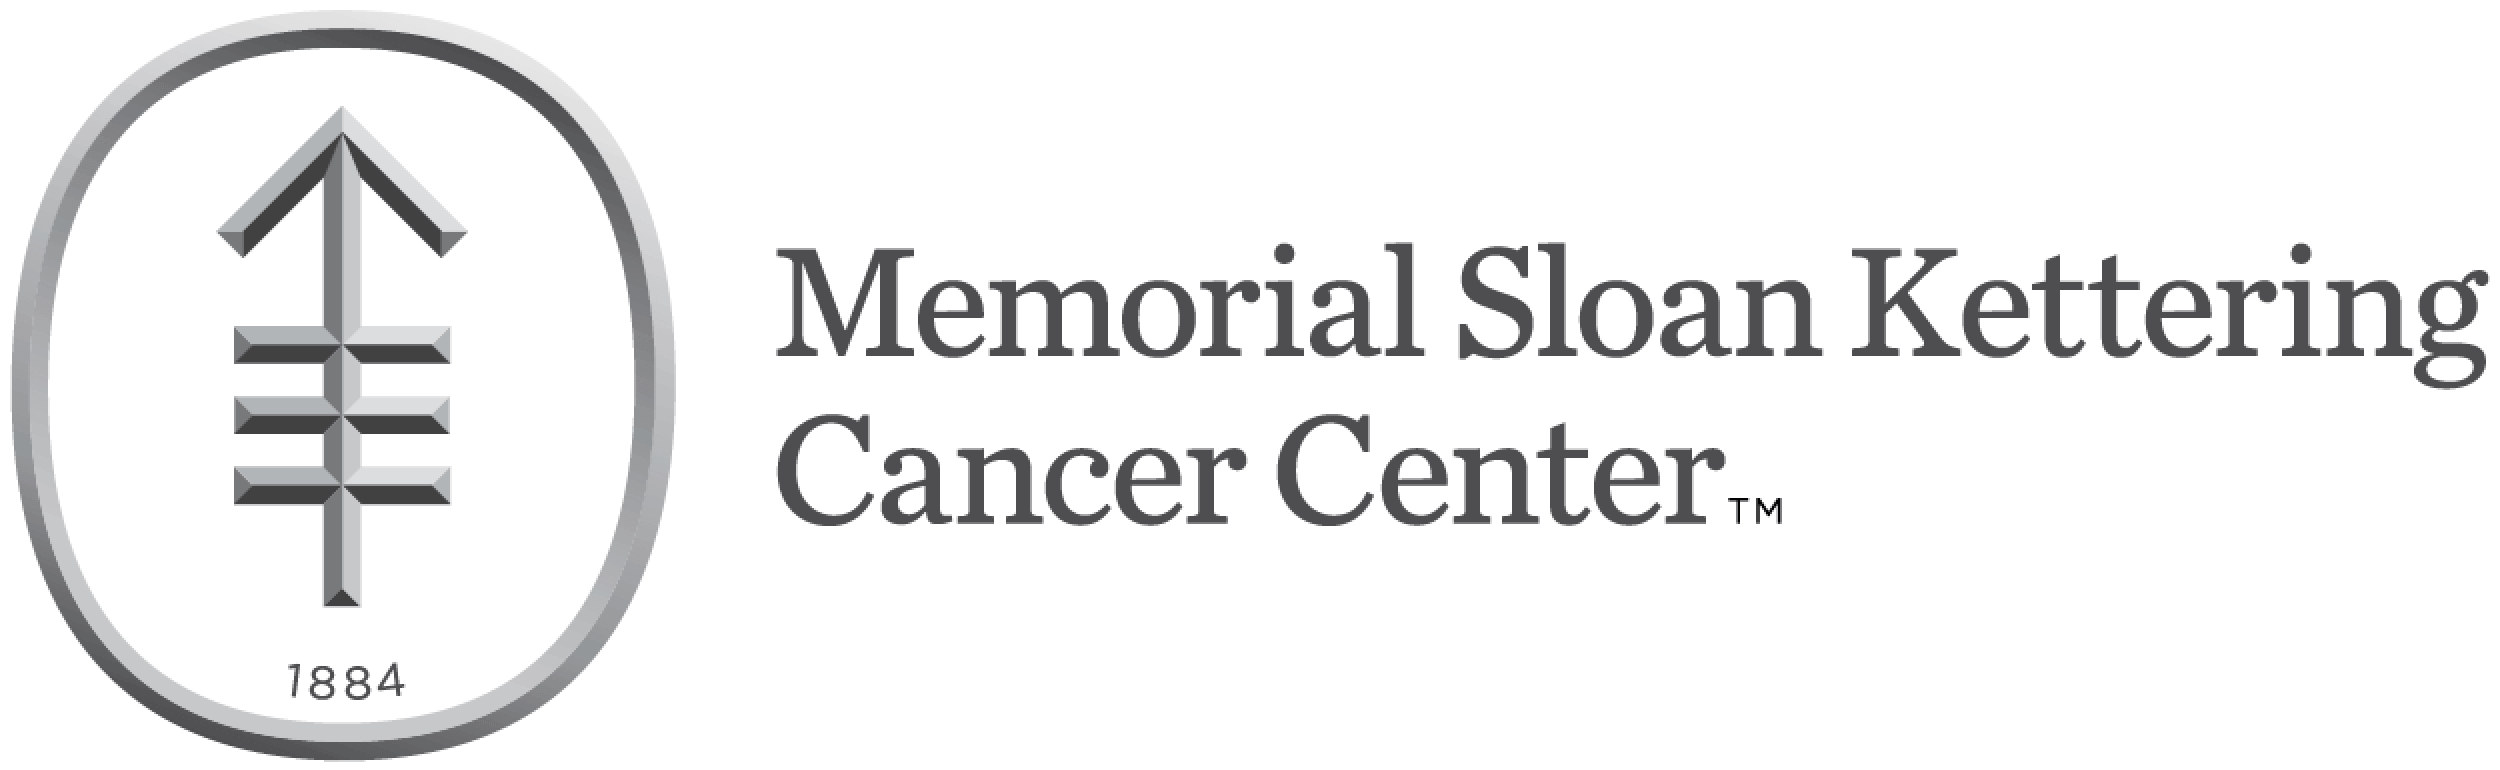 The 25 Best Companies To Work For In 2016 - Memorial Sloan Kettering Cancer Center